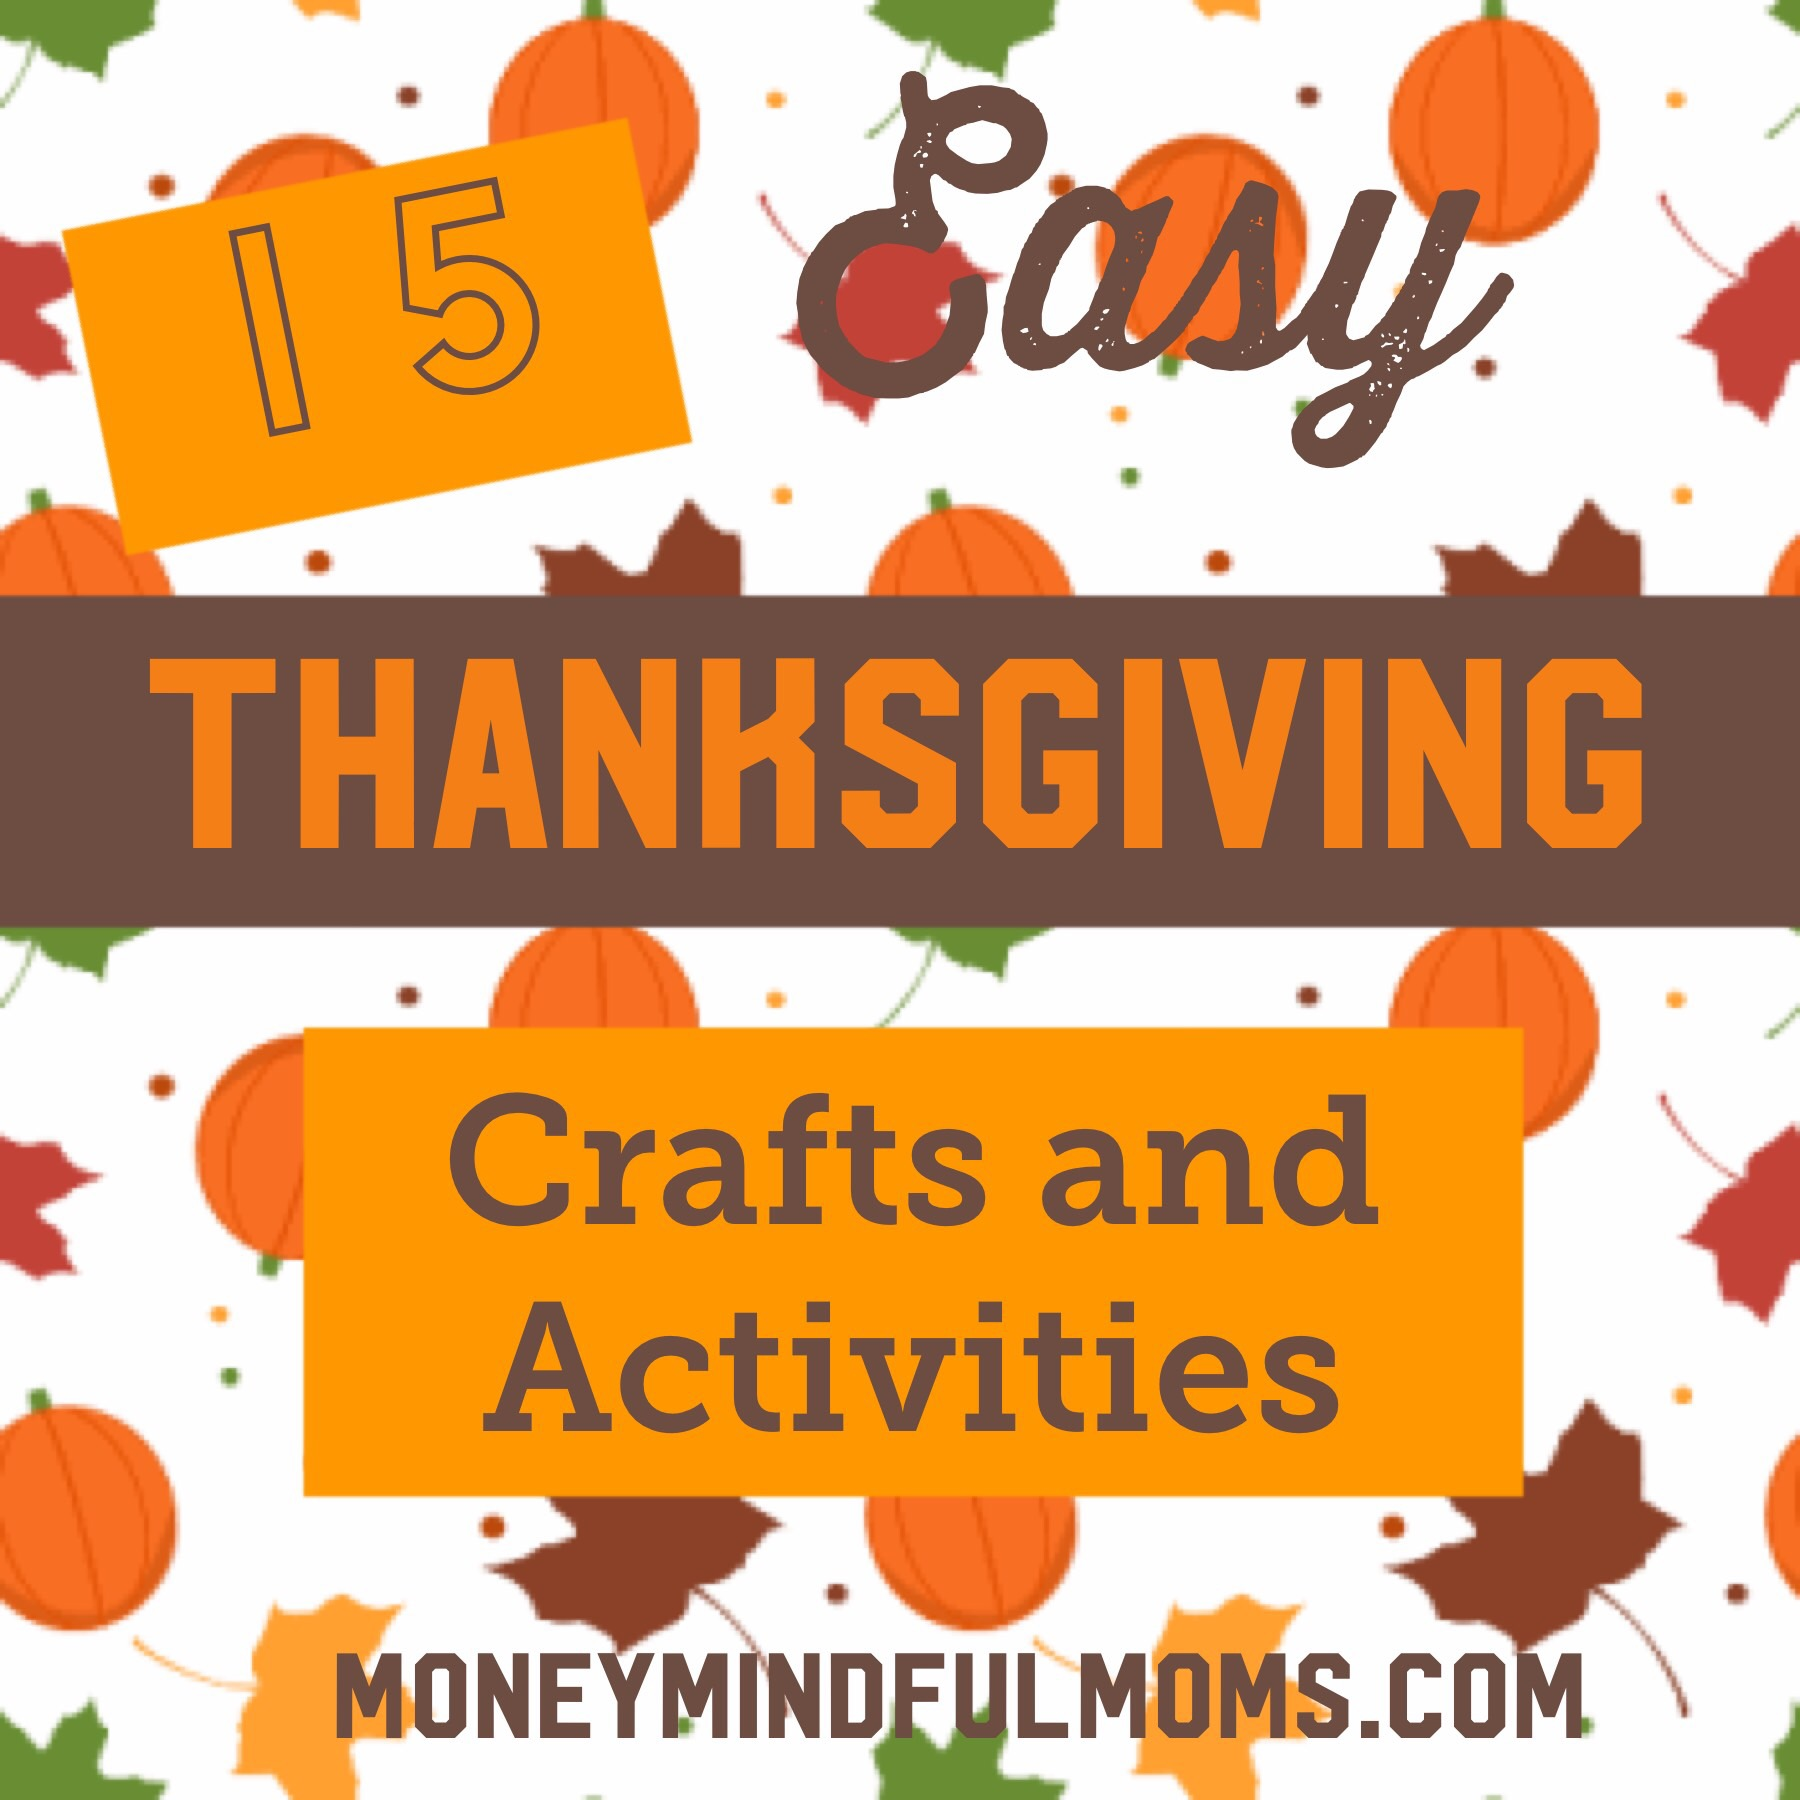 15 Easy Thanksgiving Activities, Crafts and Games for Kids!